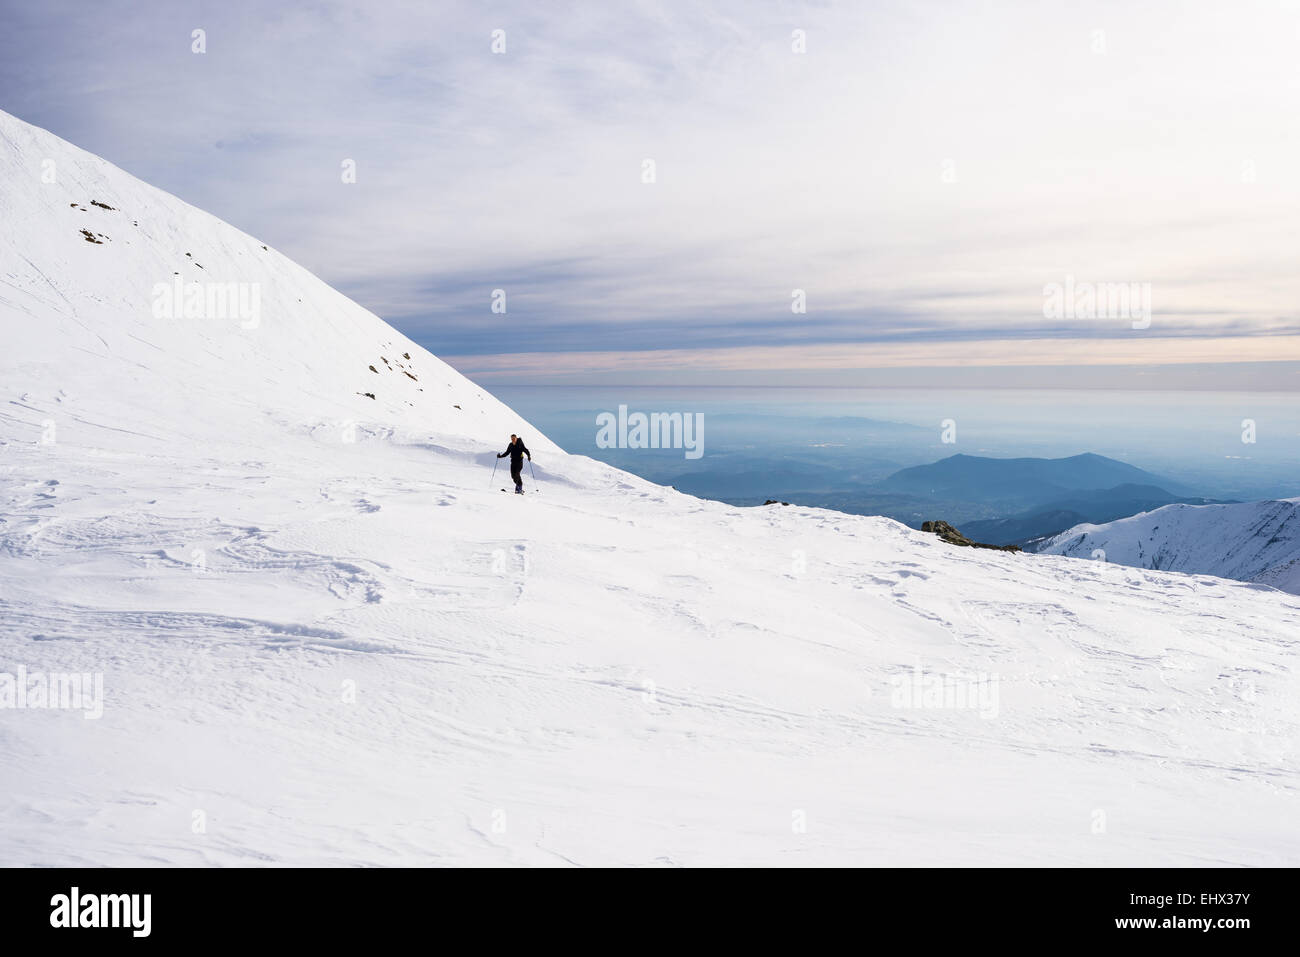 Back country skier hiking uphill on snowy slope with scenic view in the background. Concept of conquering adversities. - Stock Image